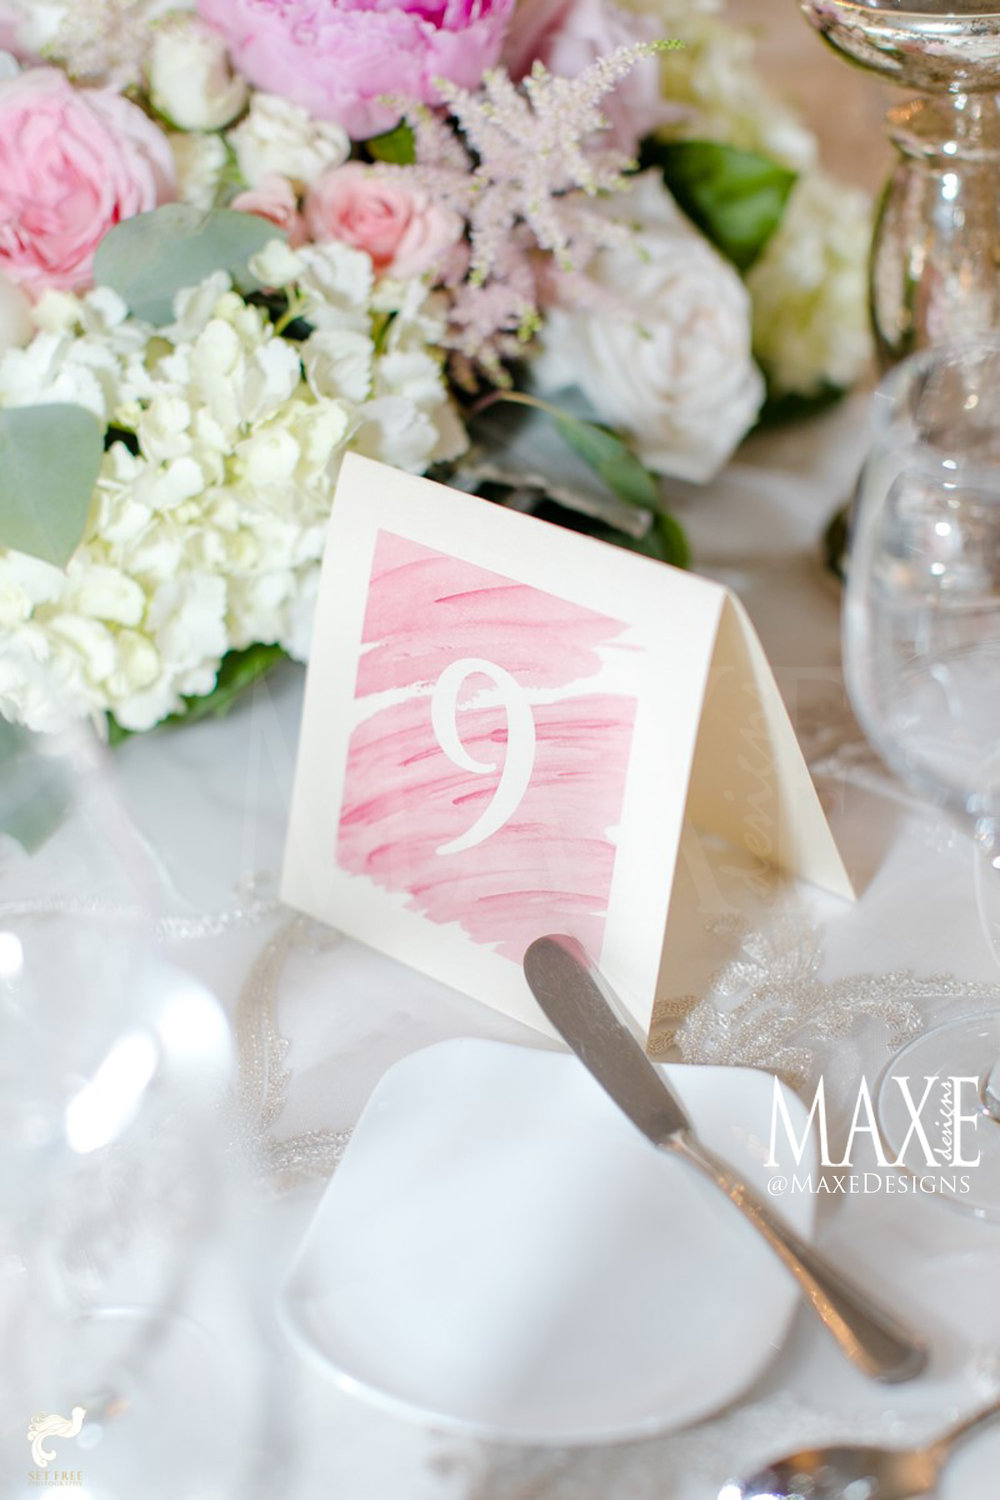 Amanda & Alex's Florida Wedding - a beautiful watercolor was the perfect complement to their table décor.